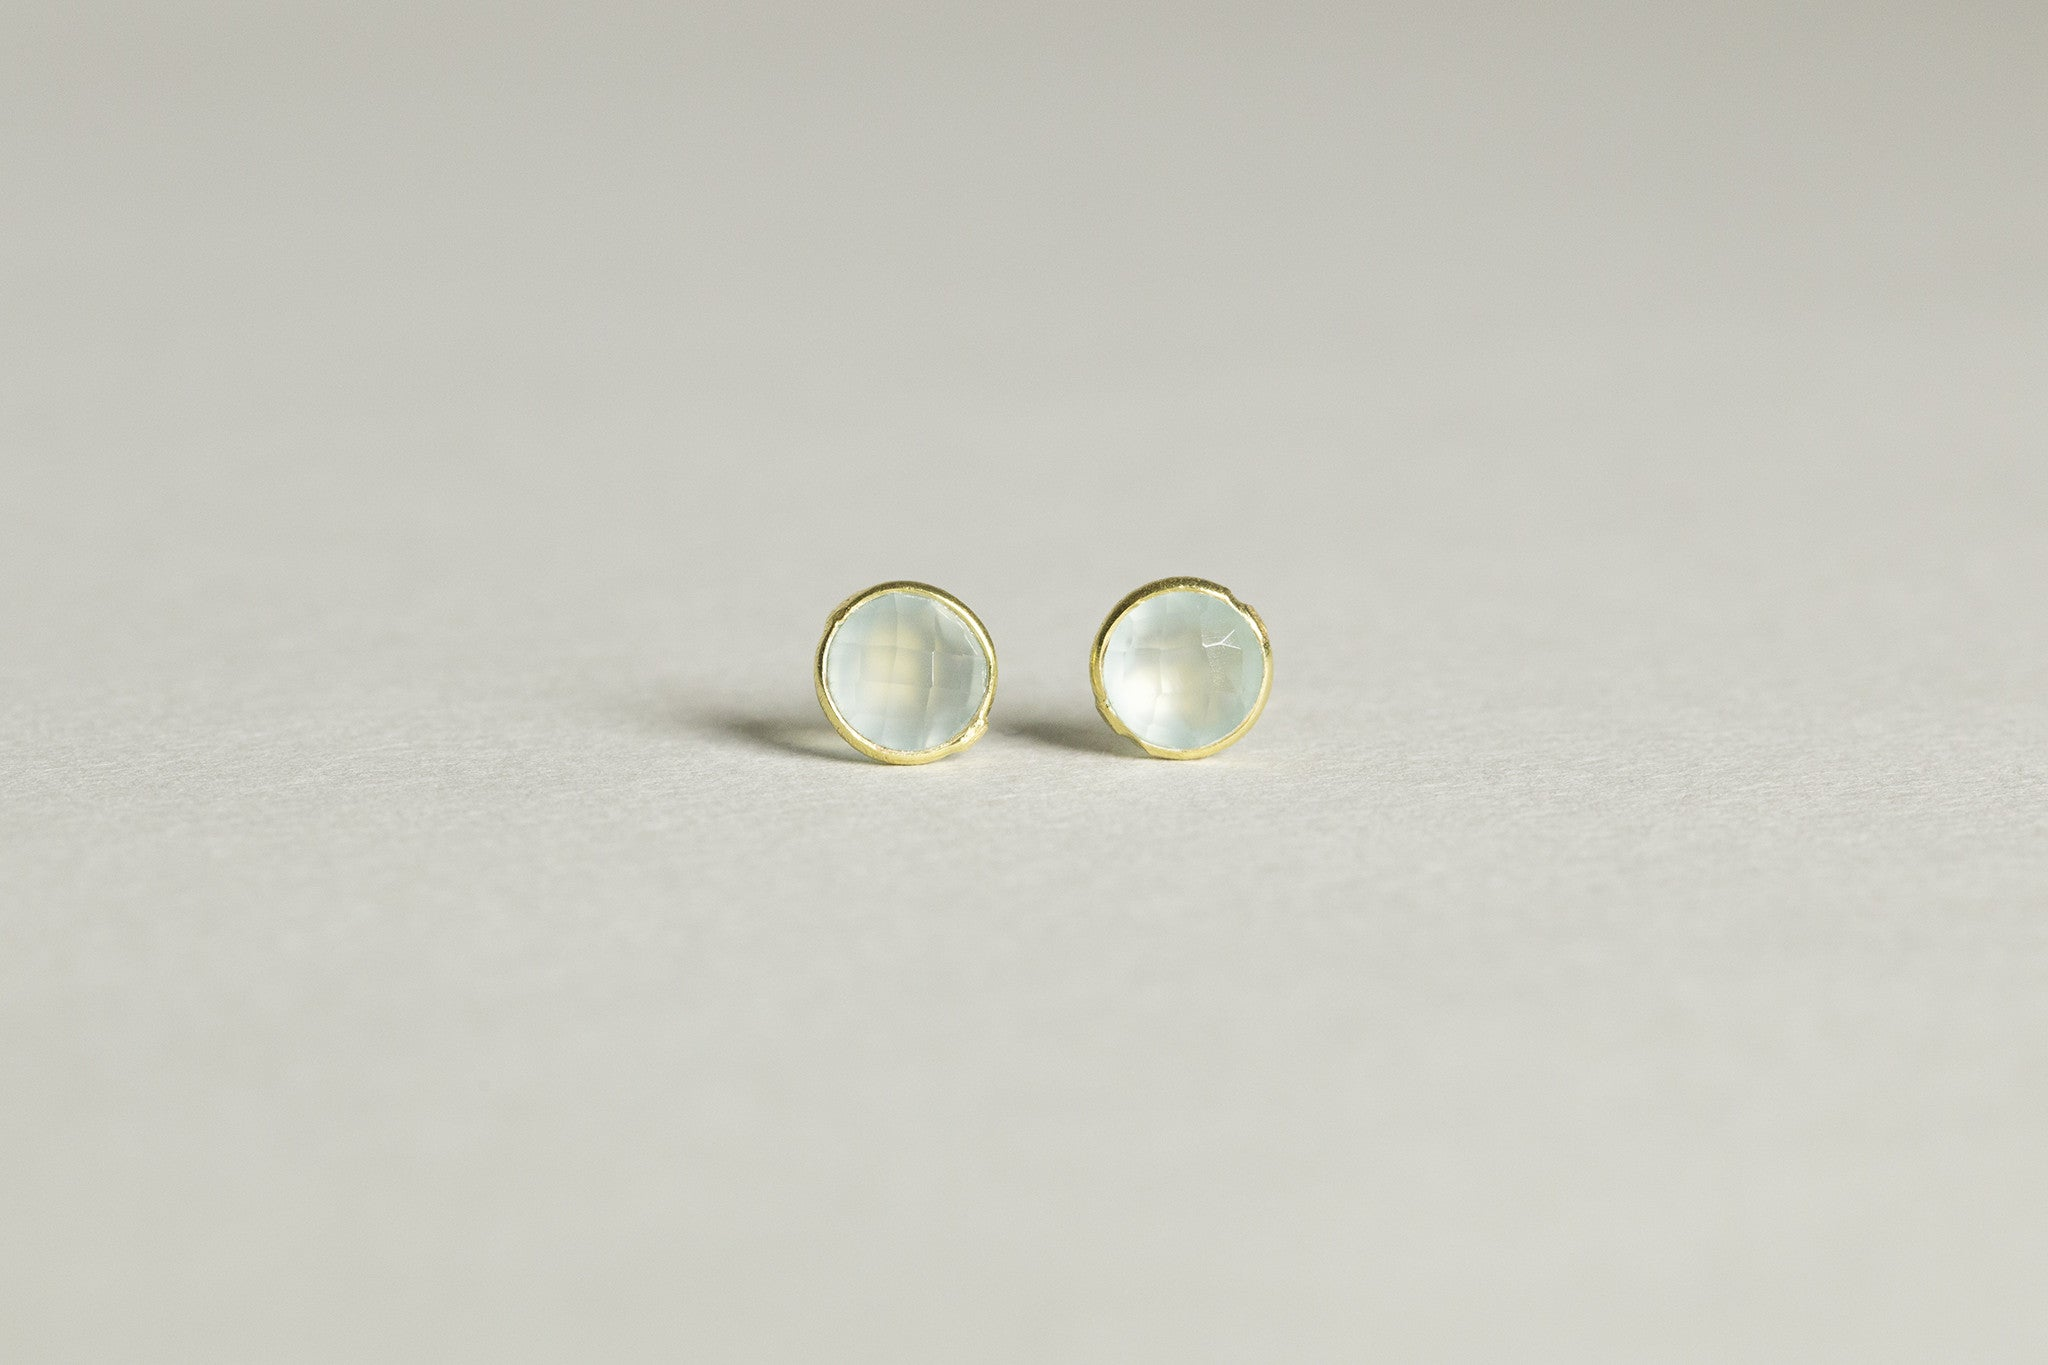 gorgeous and bright - pale green chalcedony stones encapsulated in gold plated silver